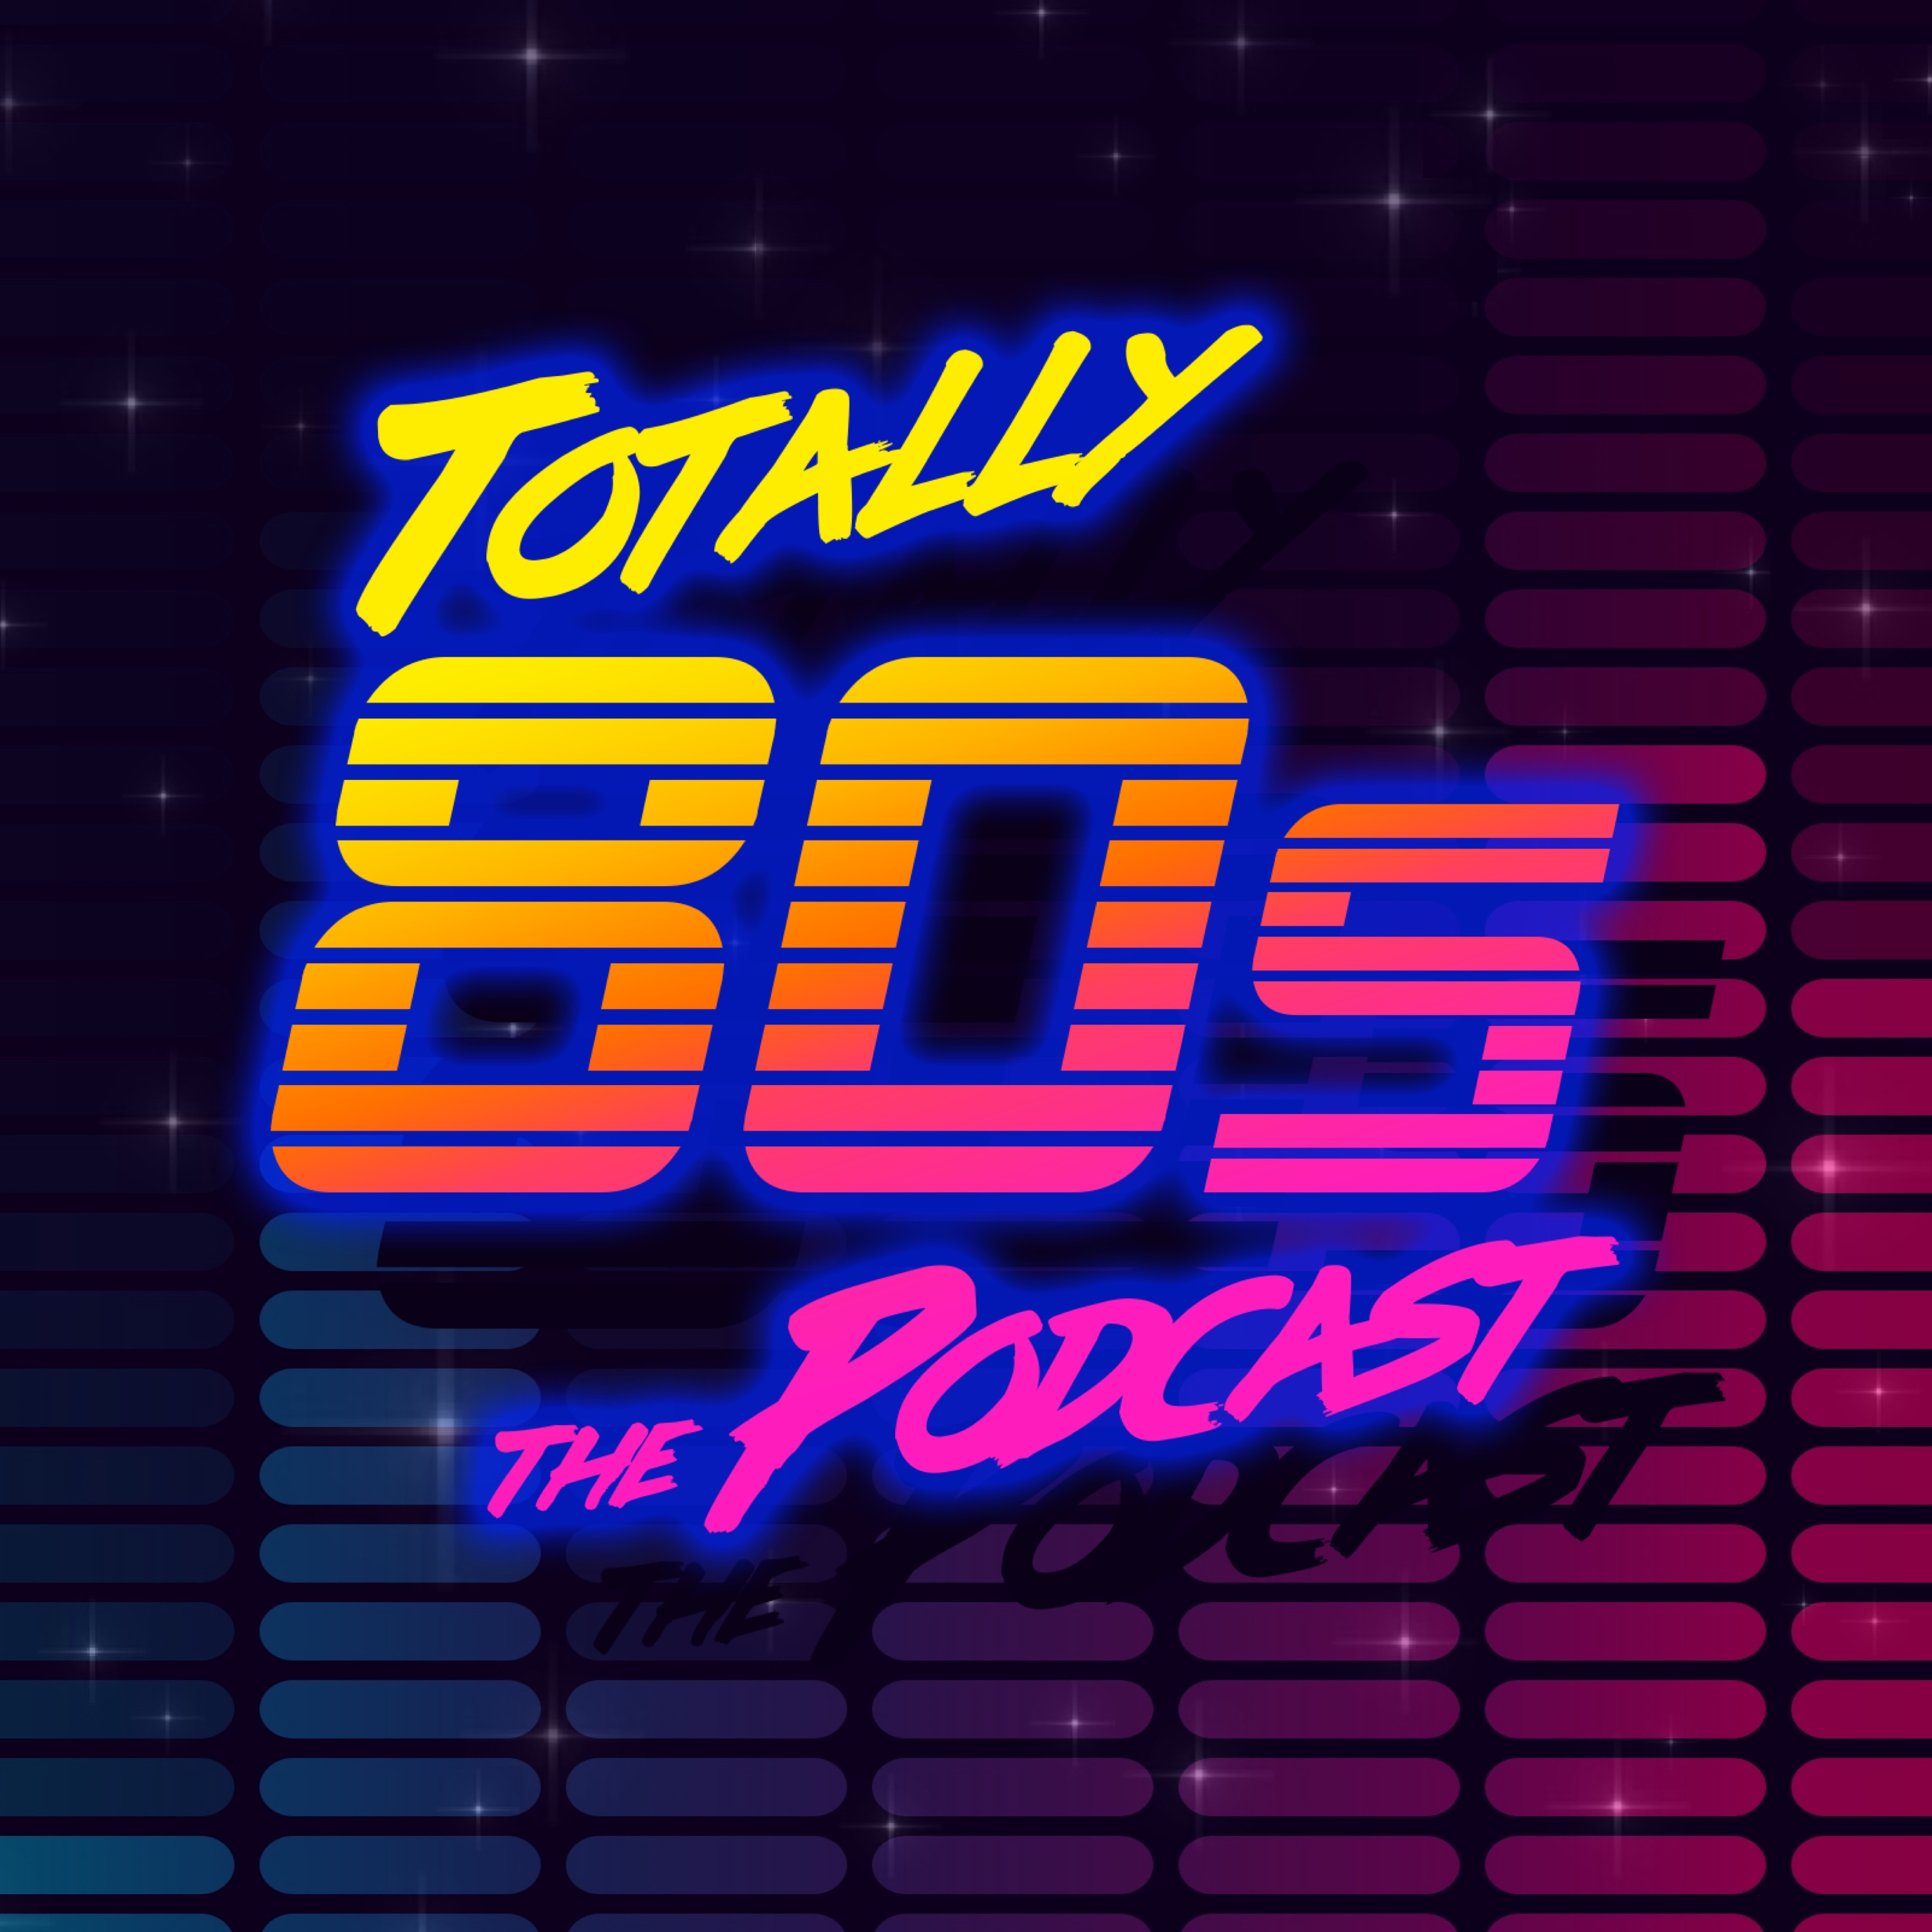 80s Podcast Tile